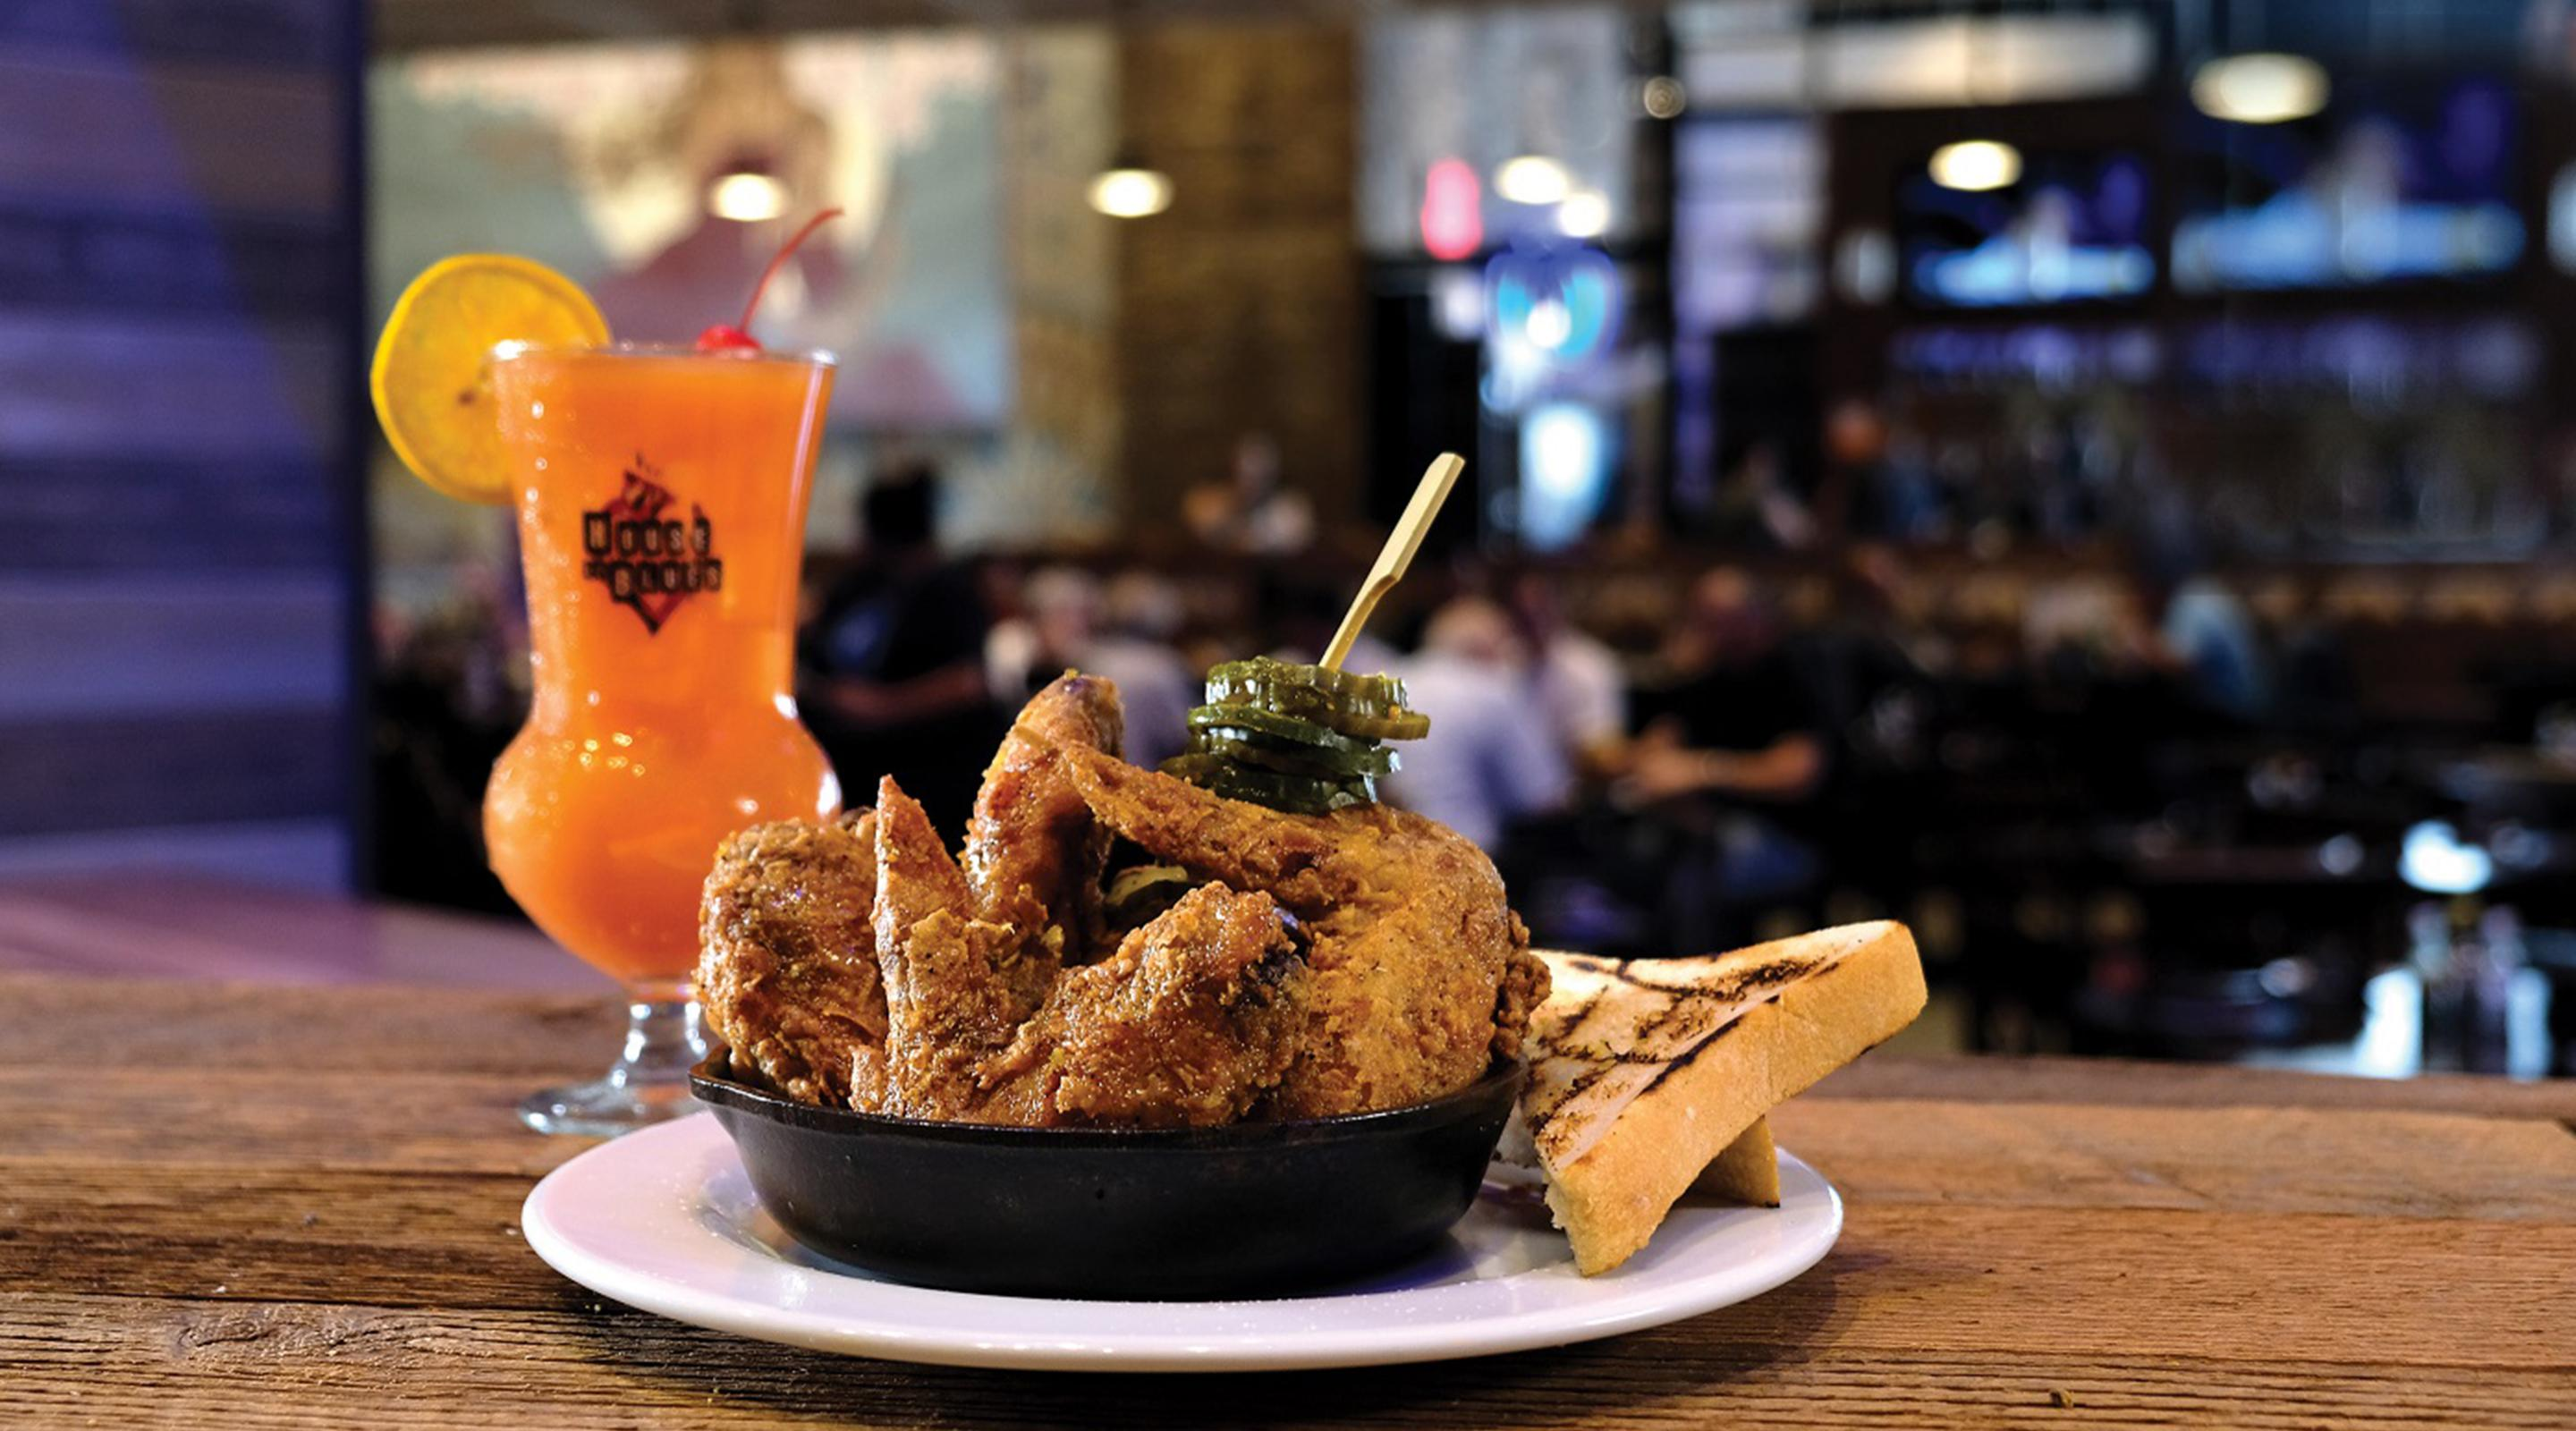 Try our Nashville Hot Wings at House of Blues Restaurant and Bar.